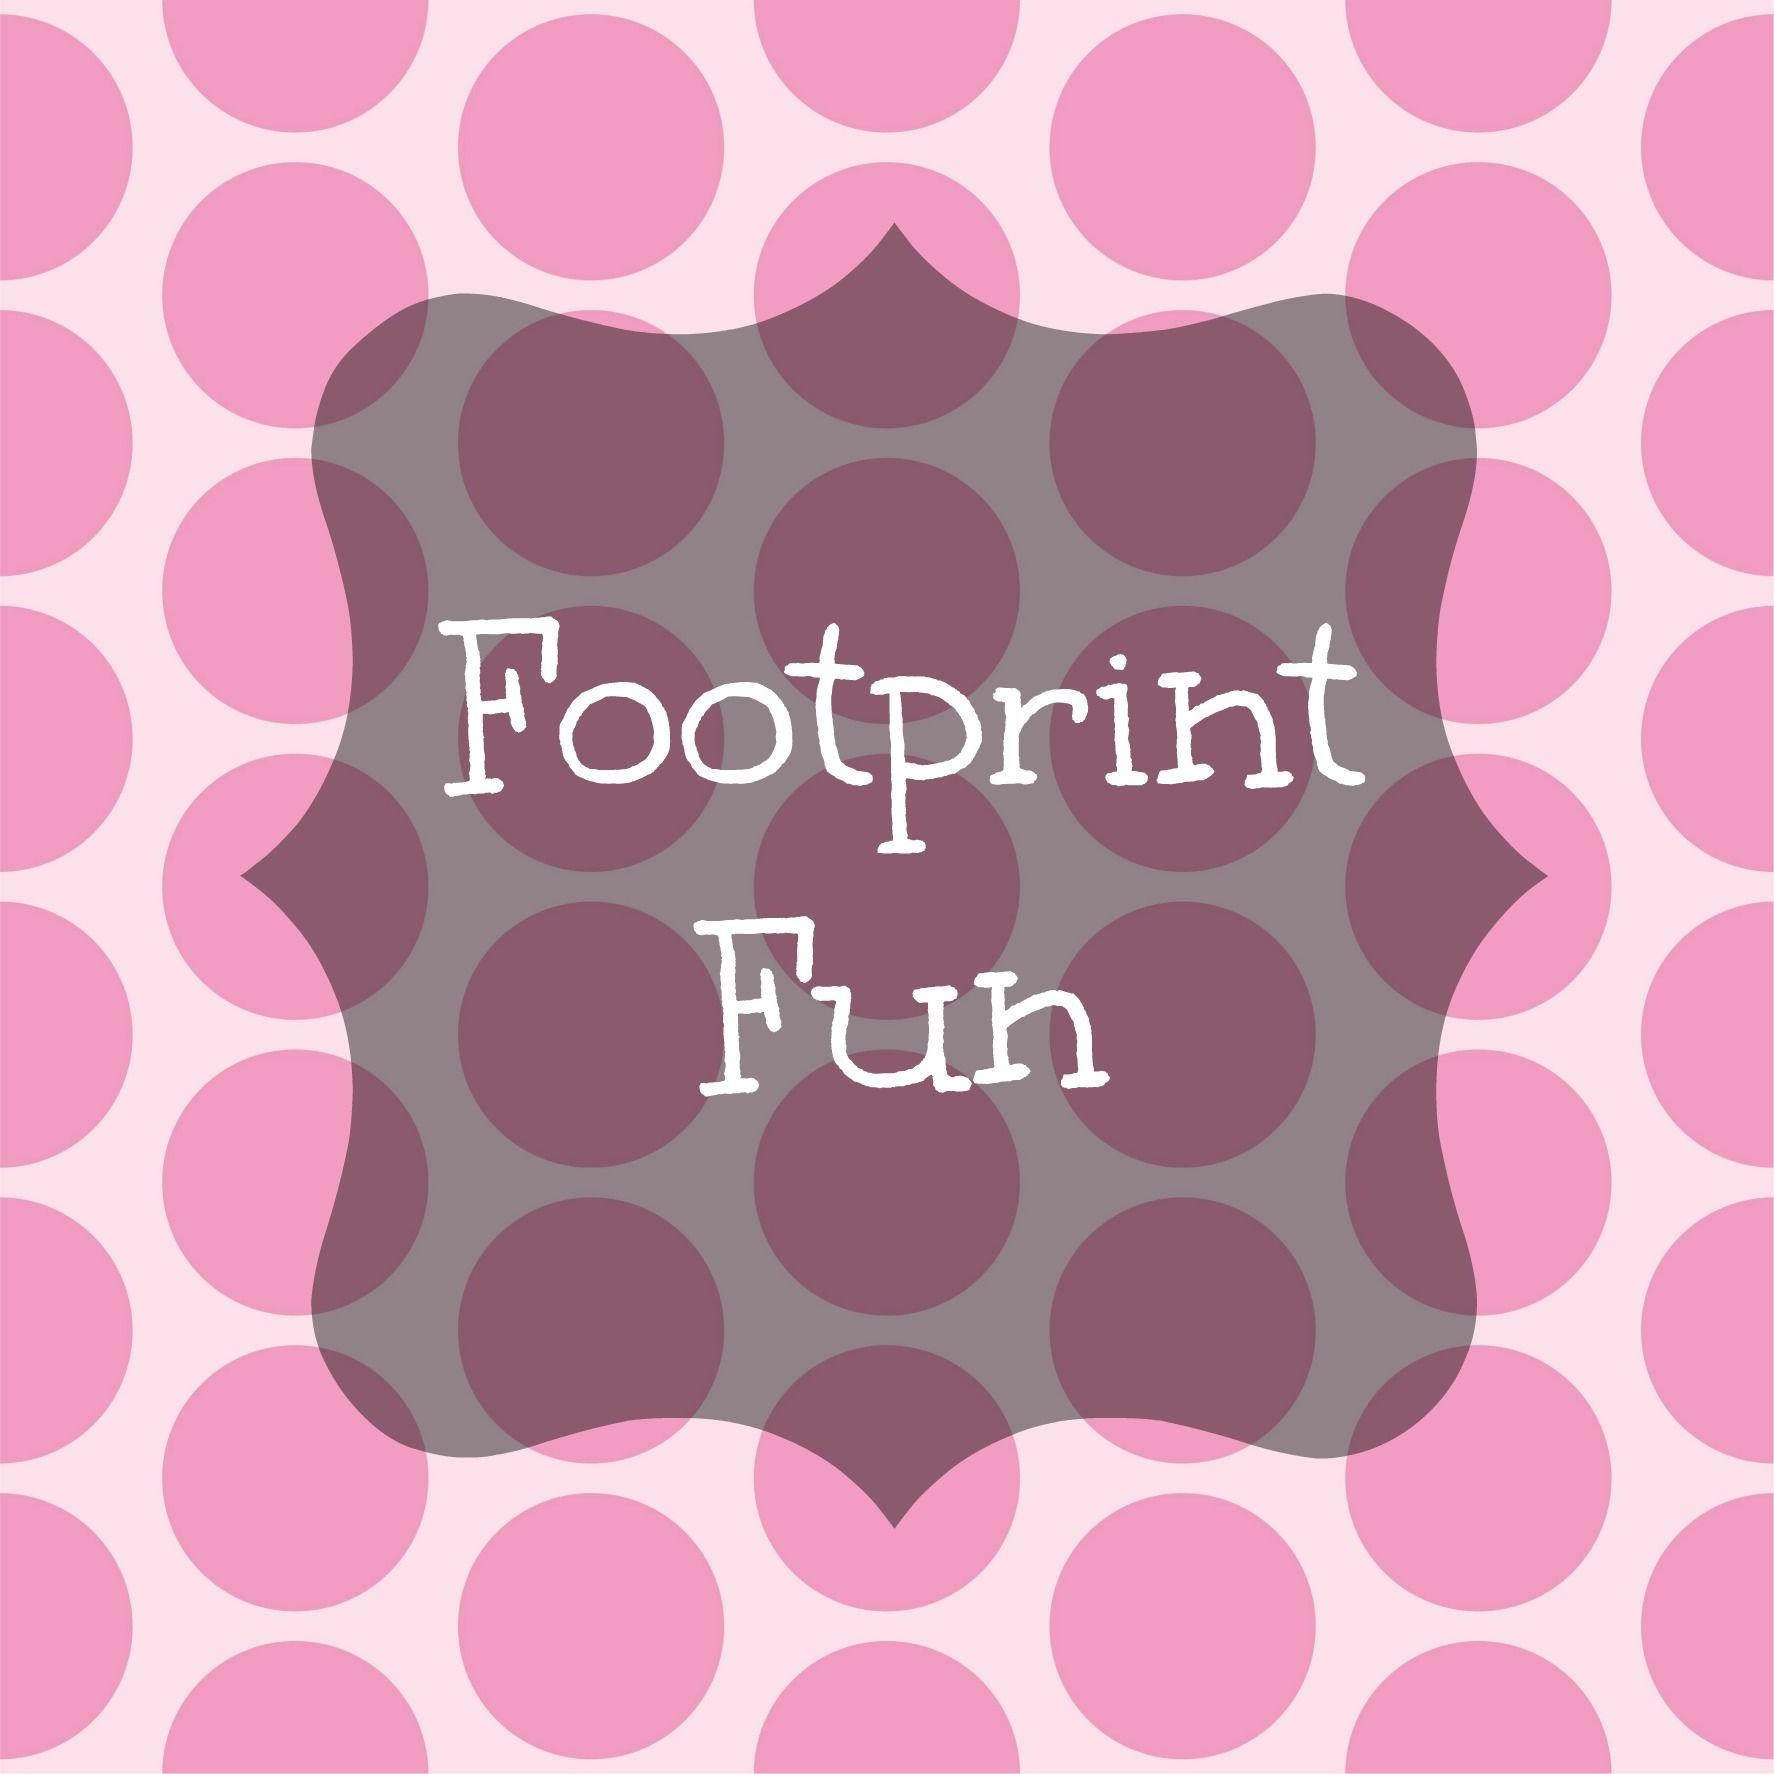 Footprint Fun